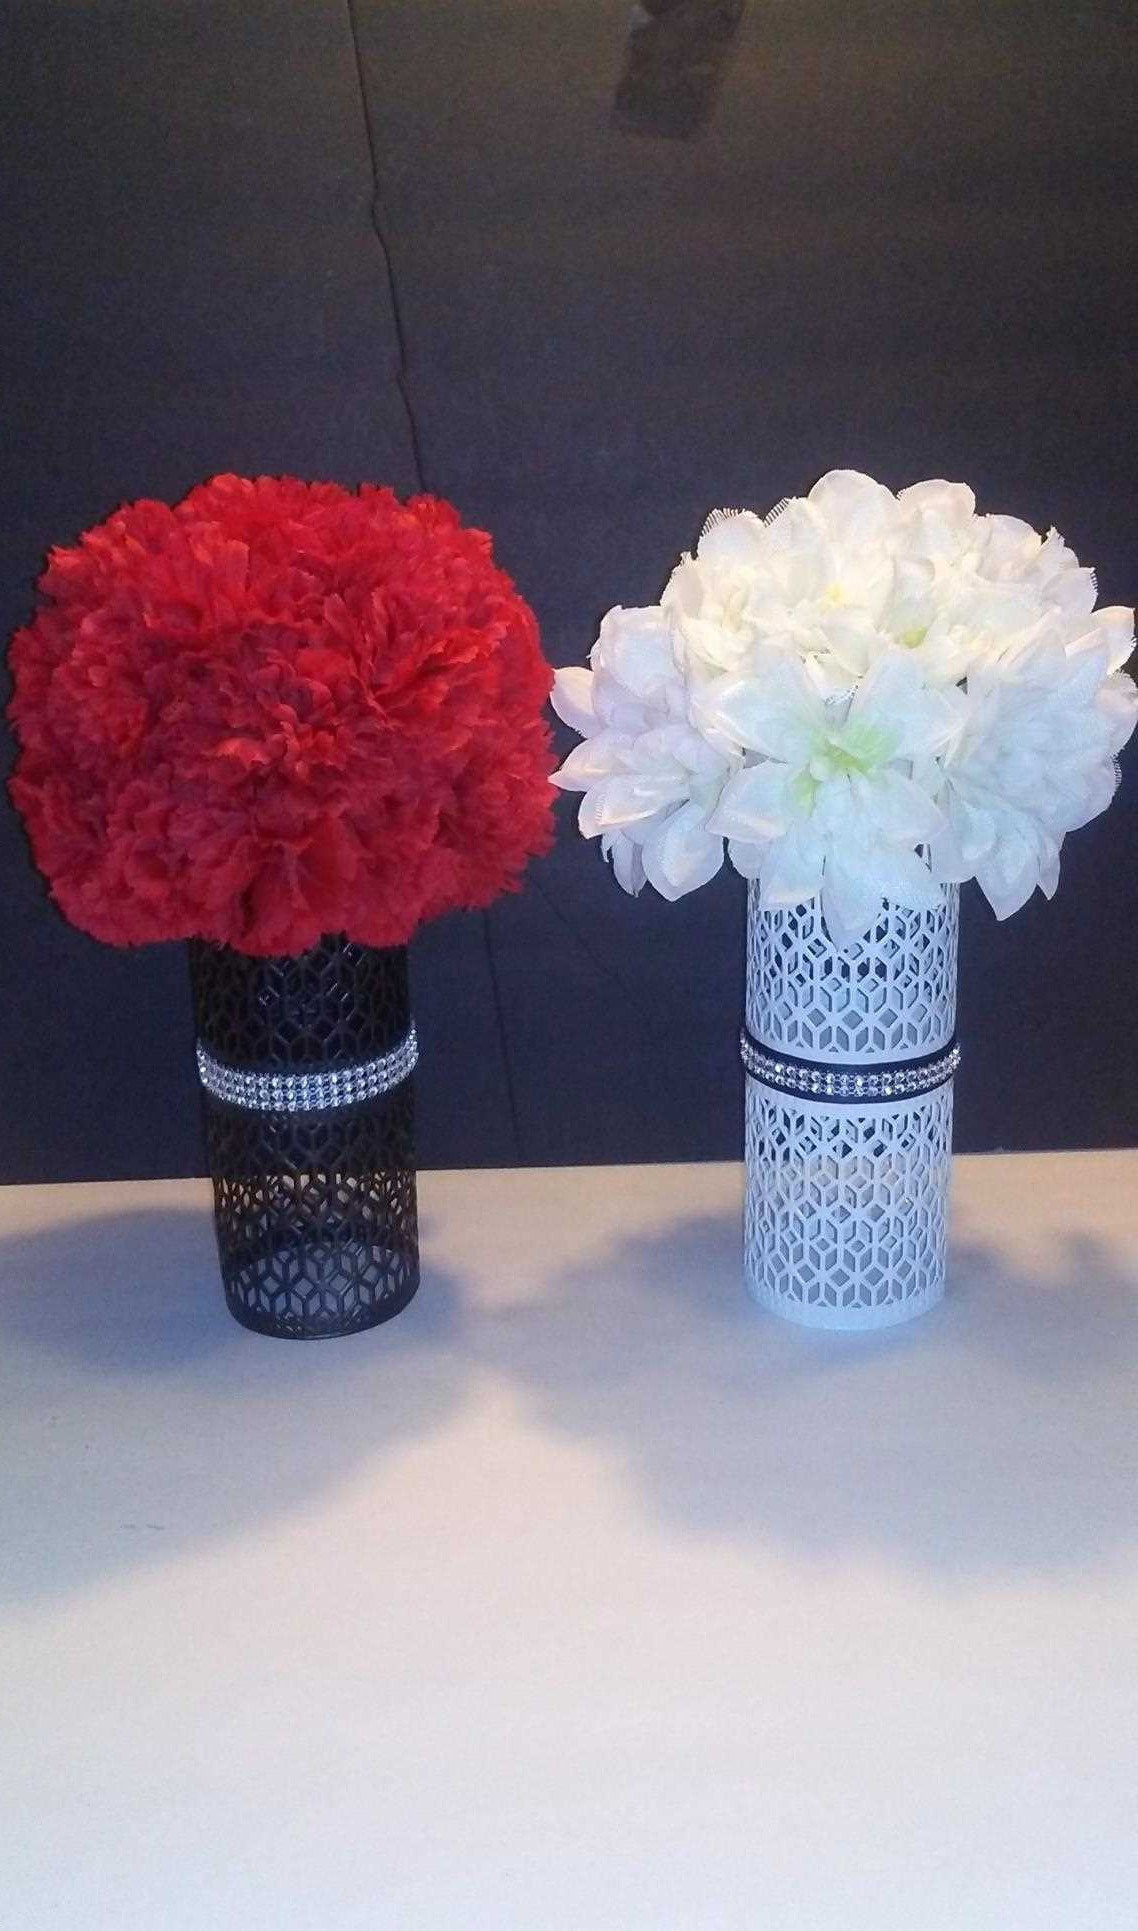 26 Fashionable Dollar Store Bud Vases